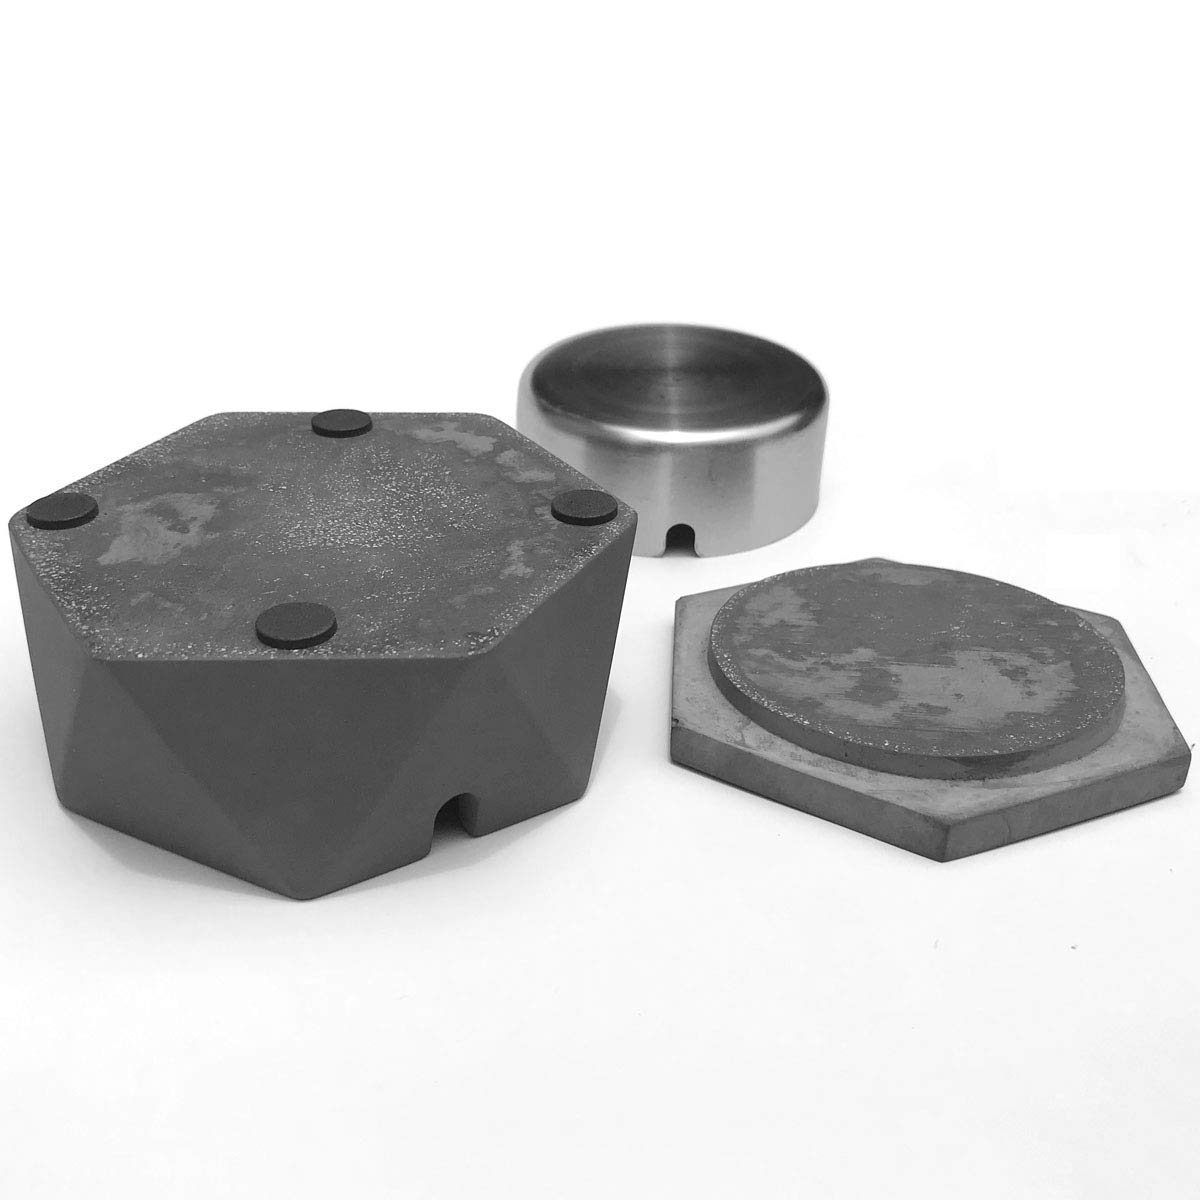 Hexagonal Geometric Ashtray with Stainless Steel Liner /& Lid FREELOVE AIGUAN Cement Ashtray for Home /& Office